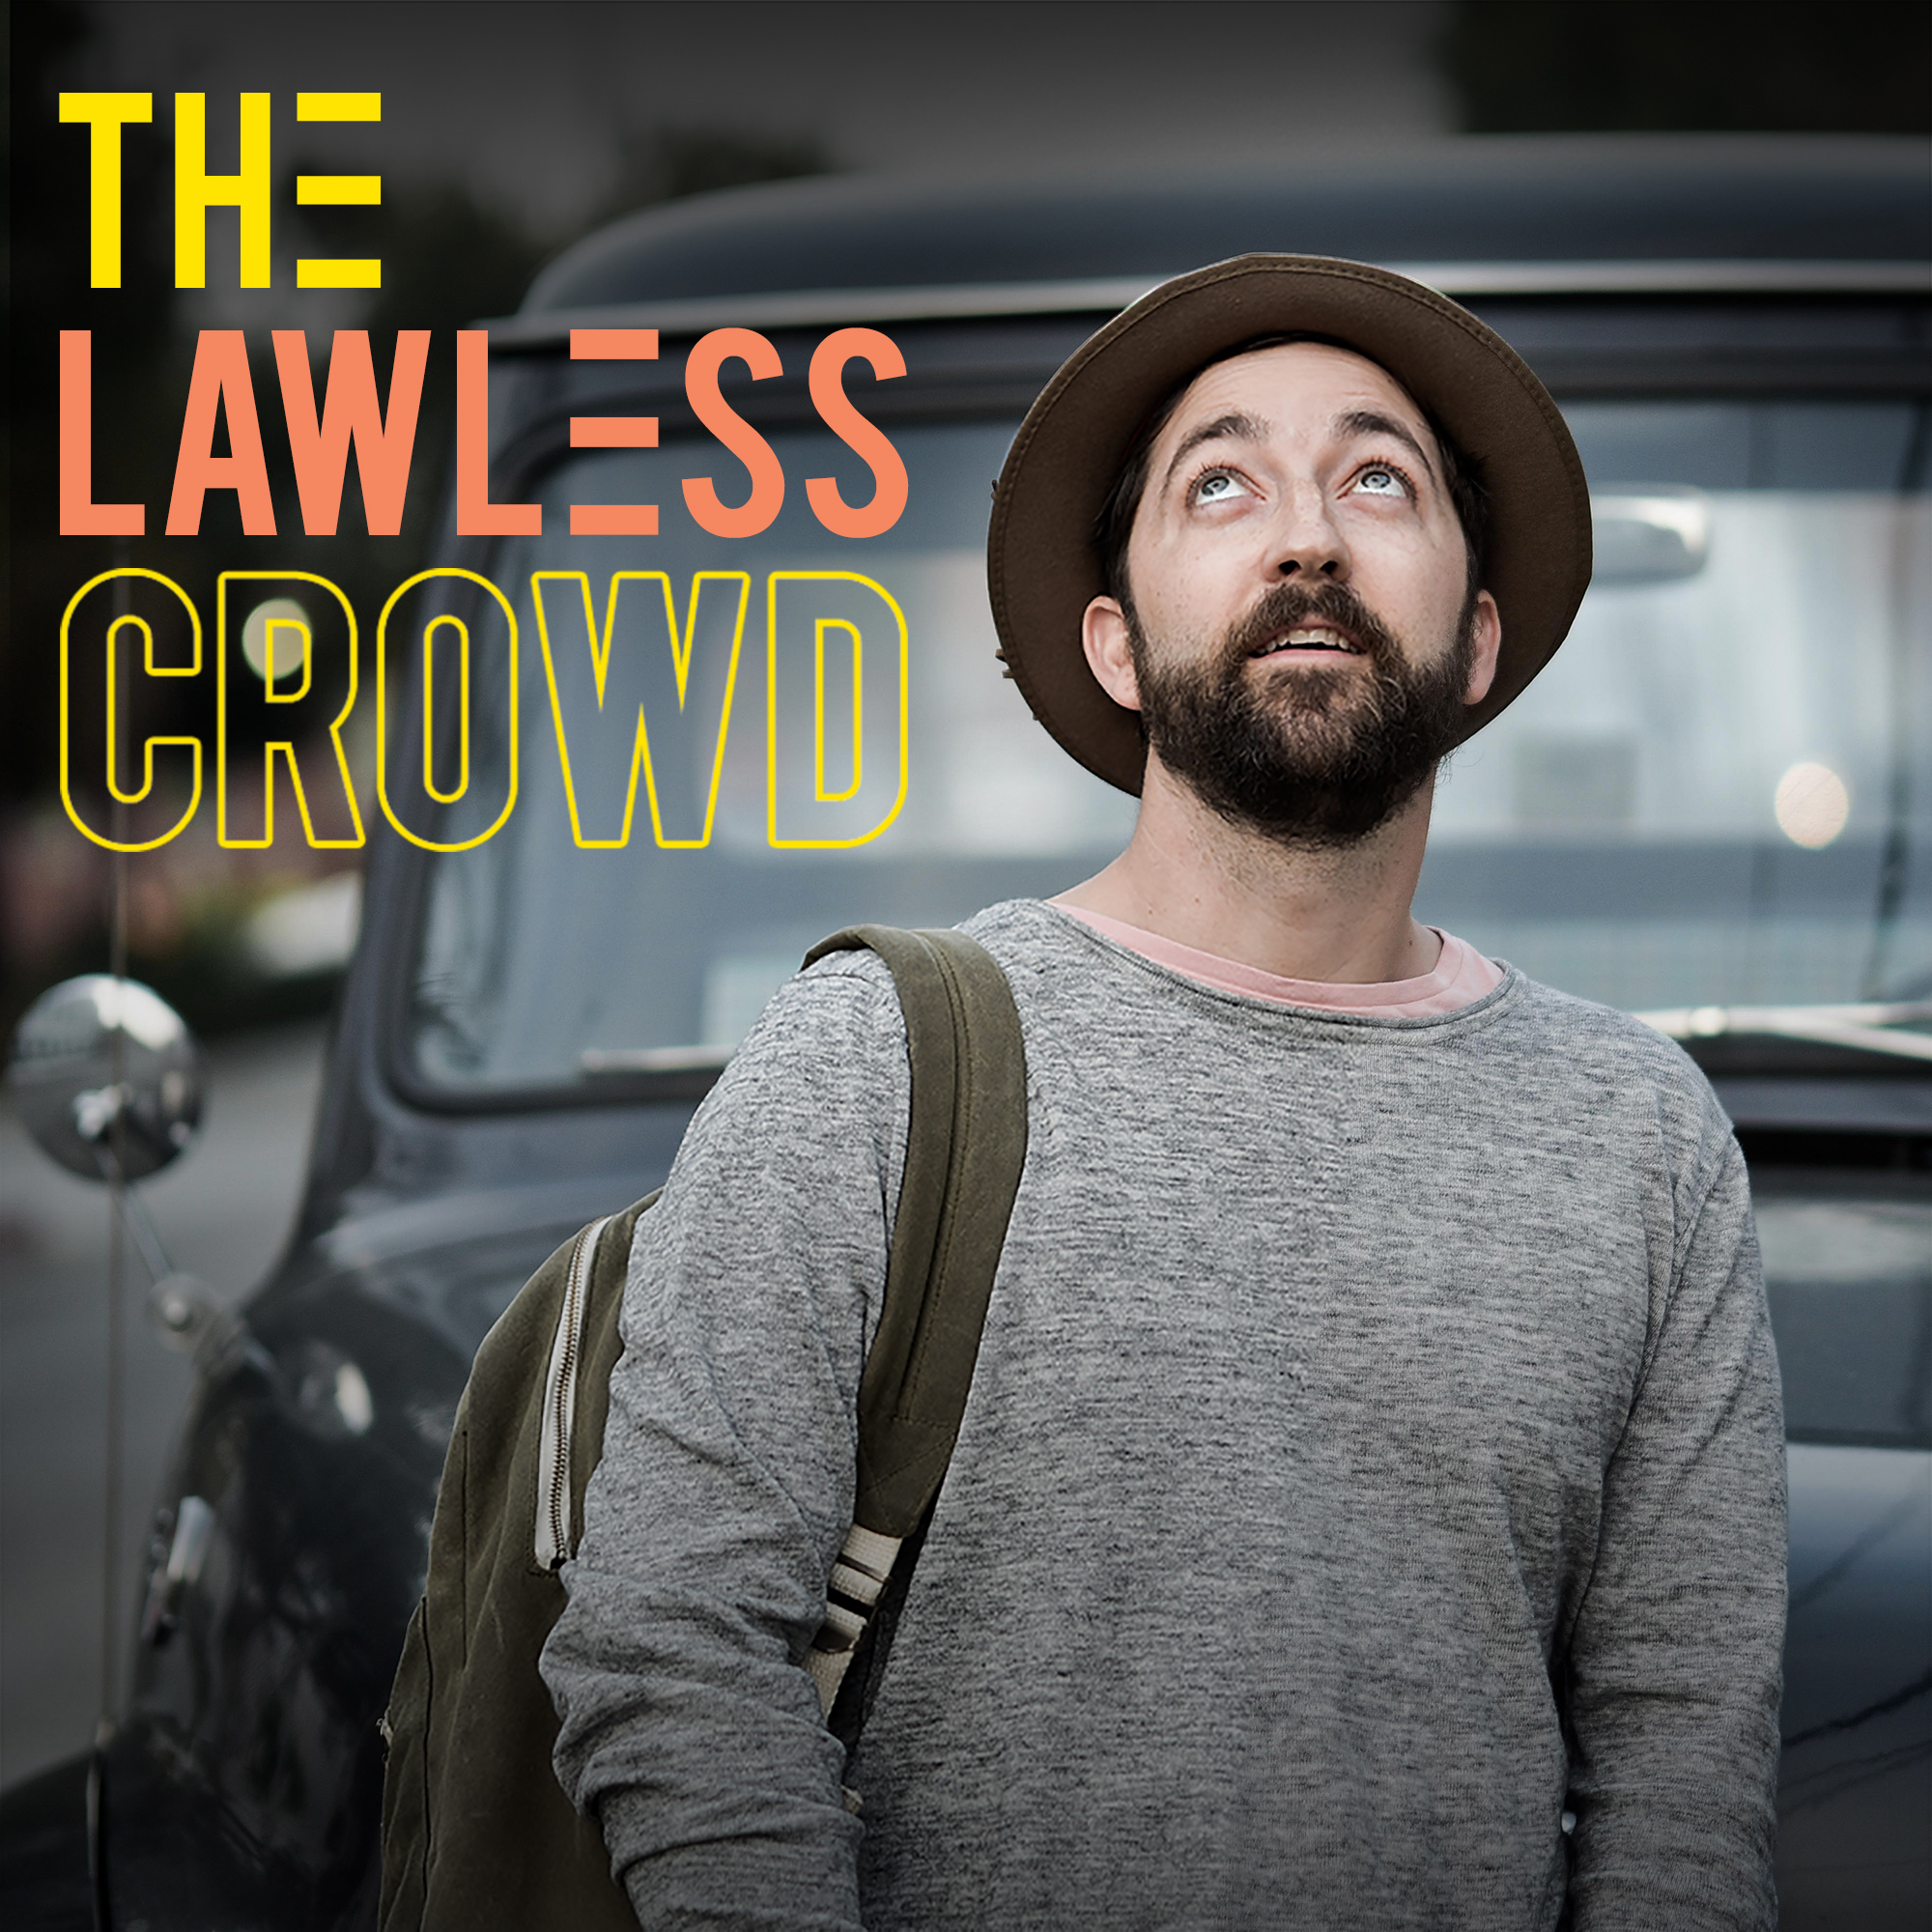 The Lawless Crowd